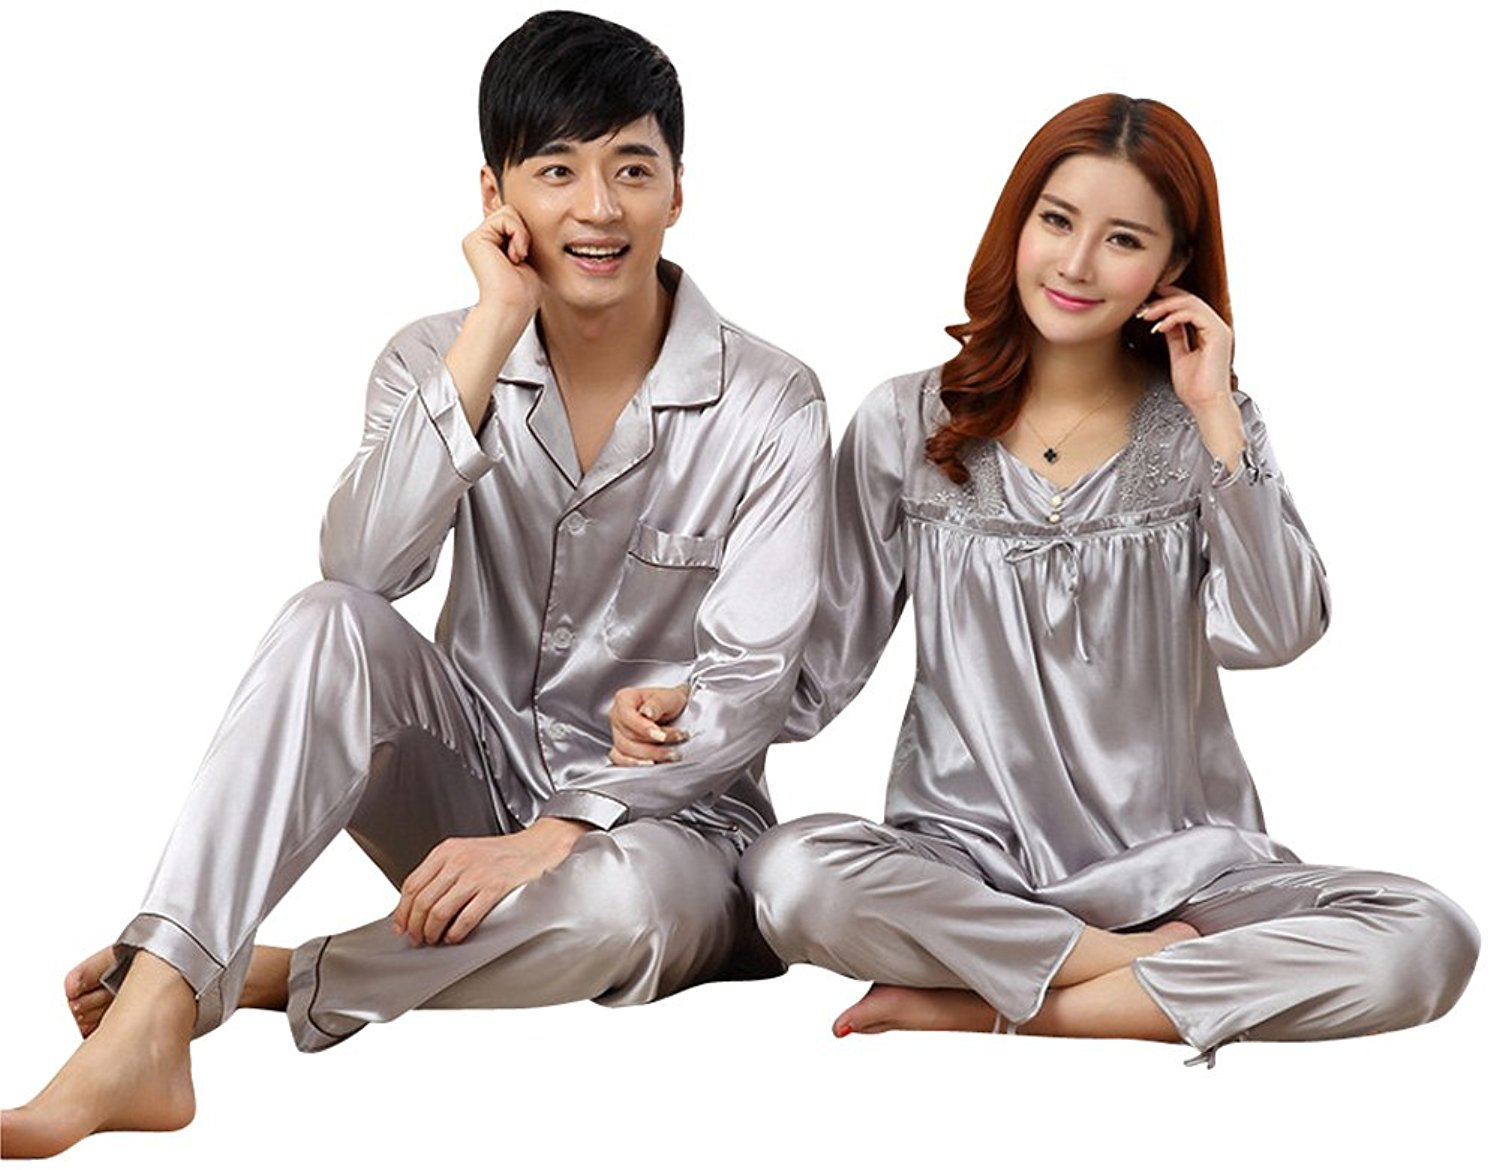 d347b580a7 Get Quotations · Riatiu Casual Matching Couples Silk Men Women Pajamas  Loungewear Set